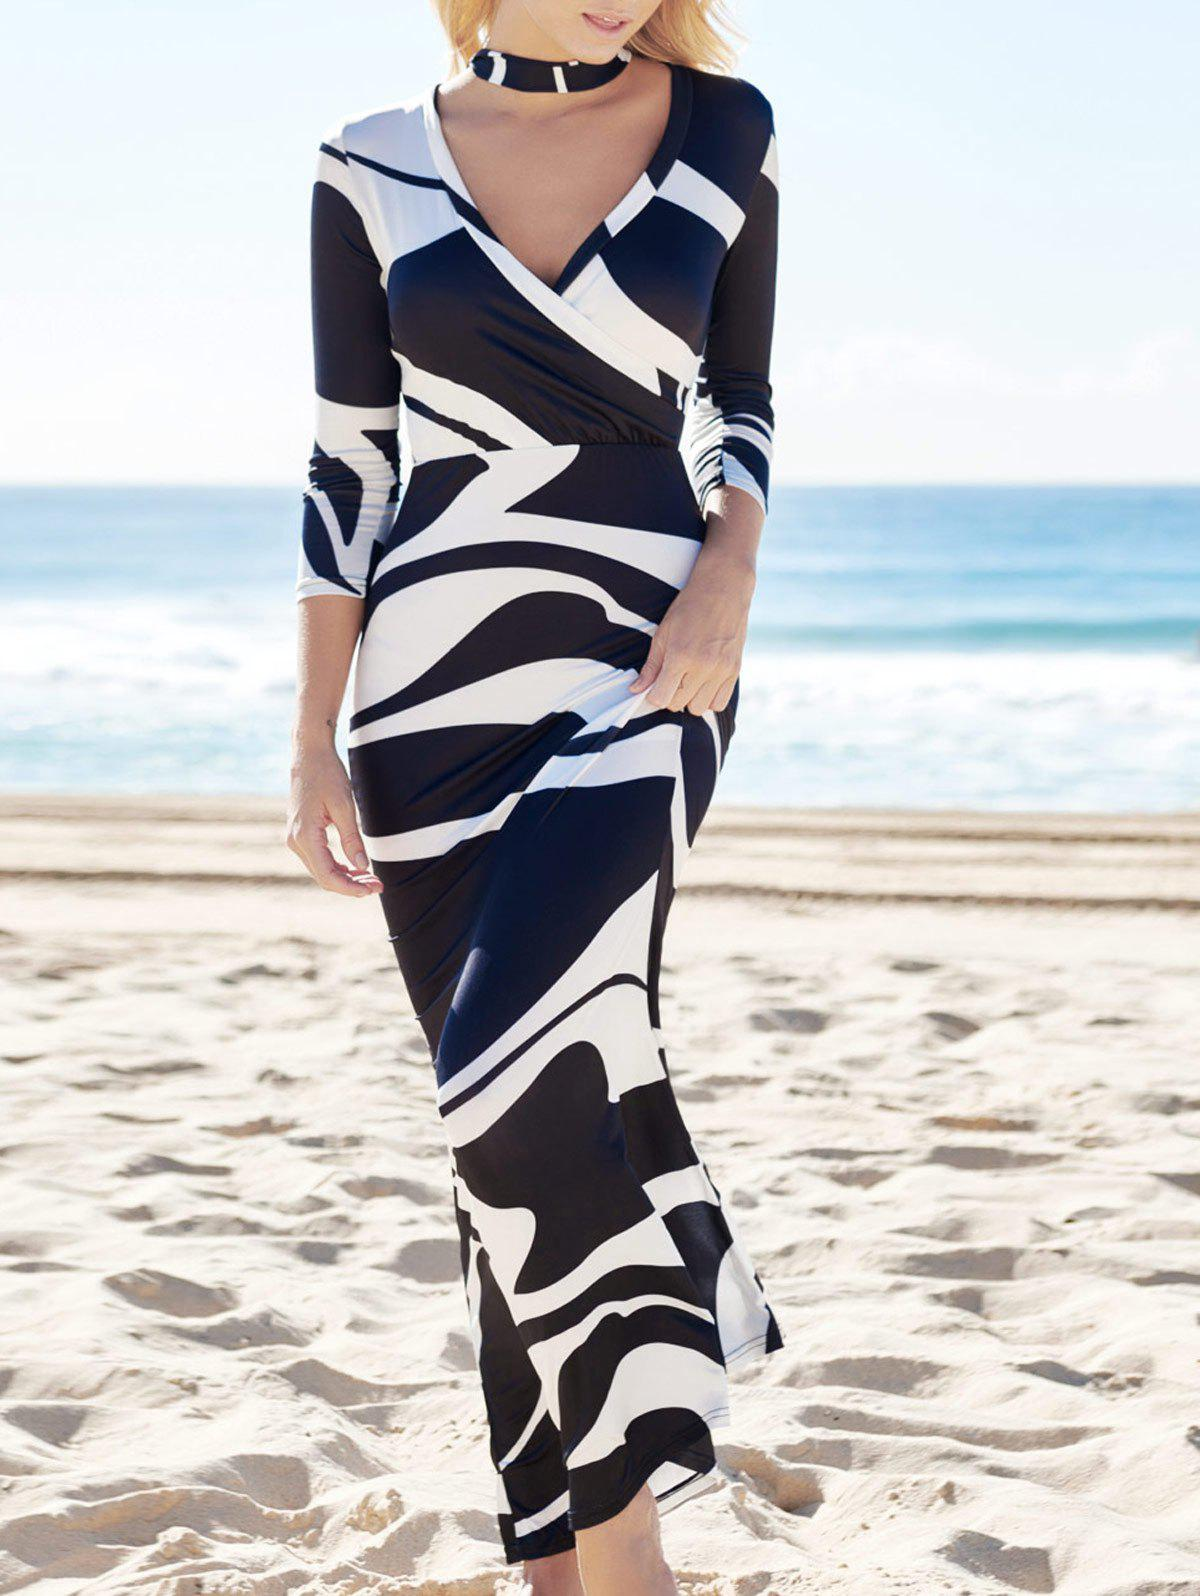 Attractive High Waist Plunging Neck Abstract Printed Maxi Dress For Women